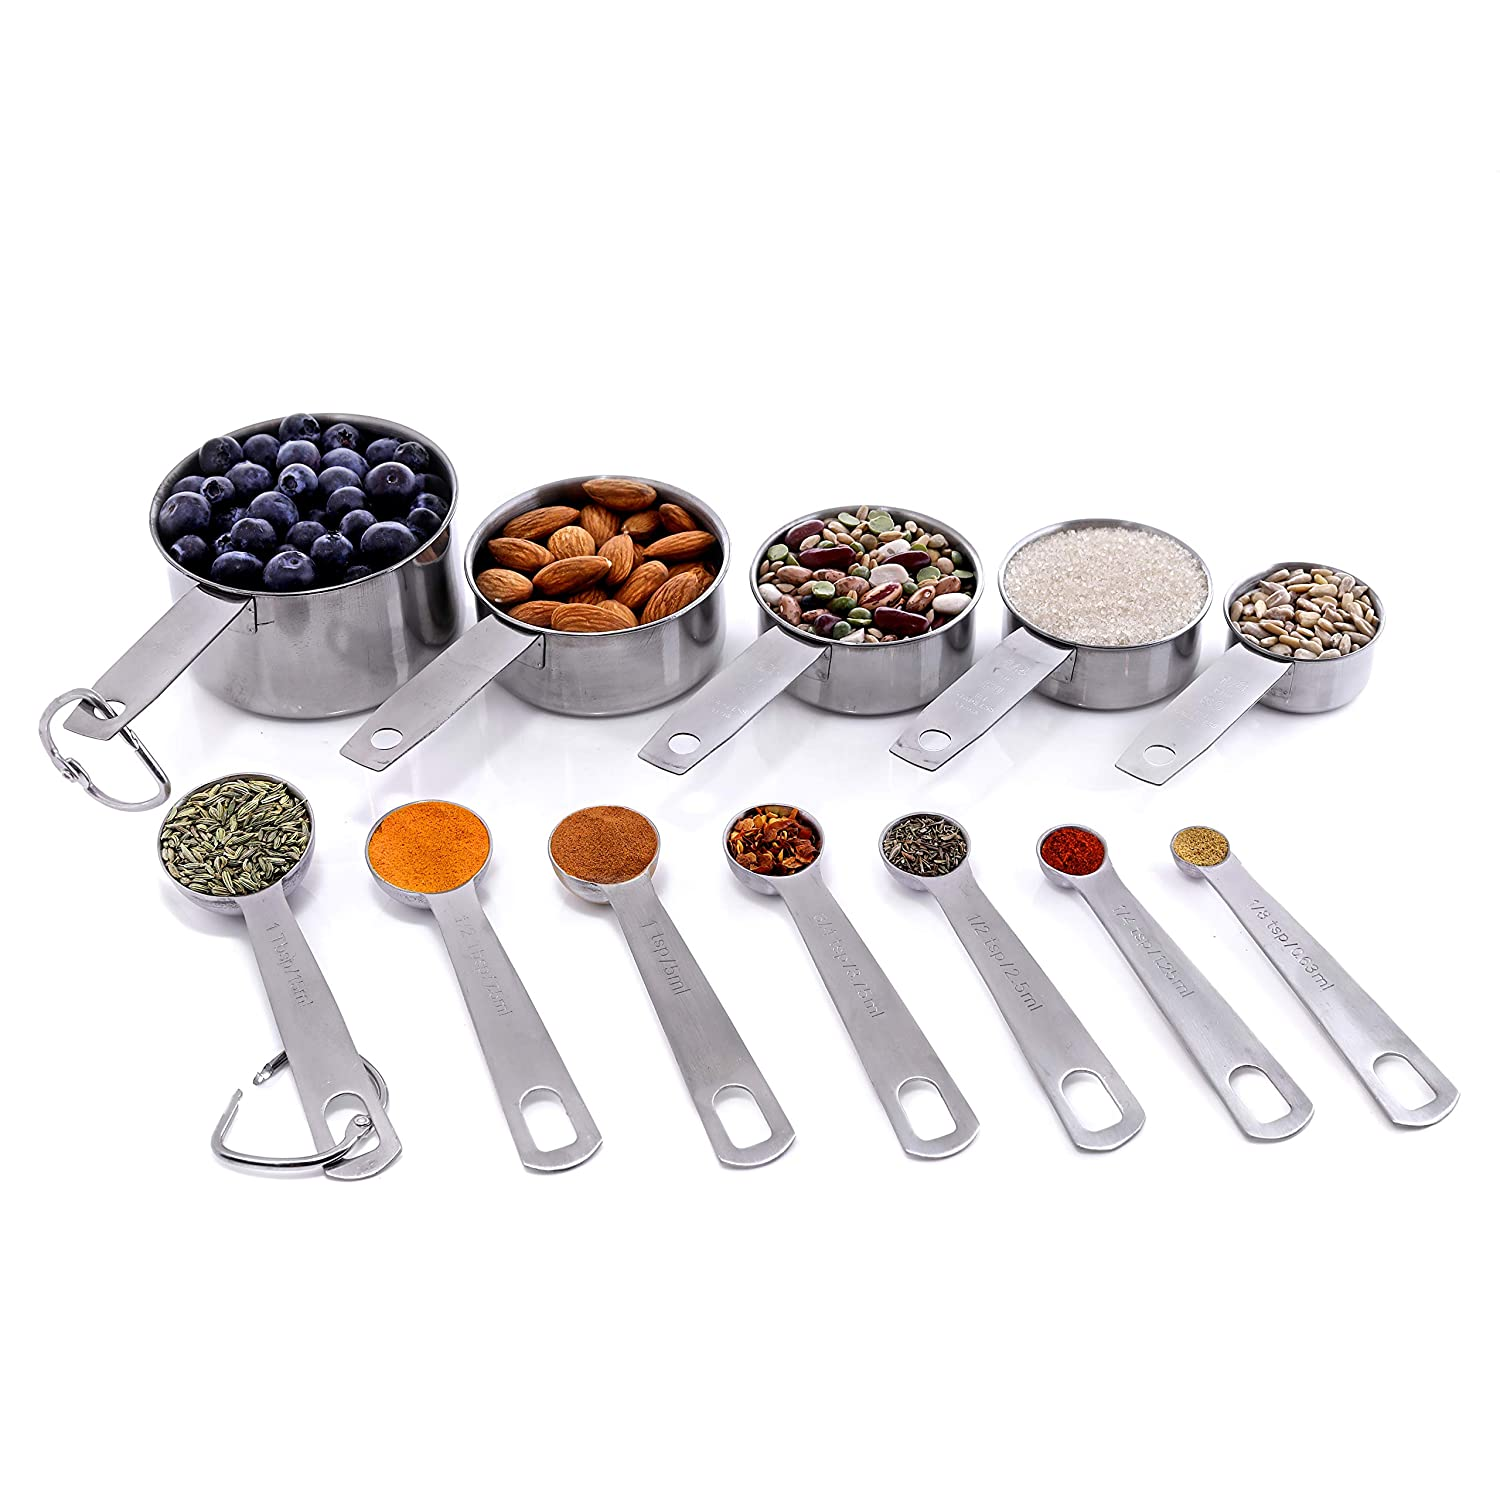 Brand New, Set of 12 Measuring Cups and Measuring Spoons in 18/8 Stainless Steel in American & Metric Measurements from Maison Maison. For Cooking, Baking, Liquid and Dry Ingredients! MM-0001